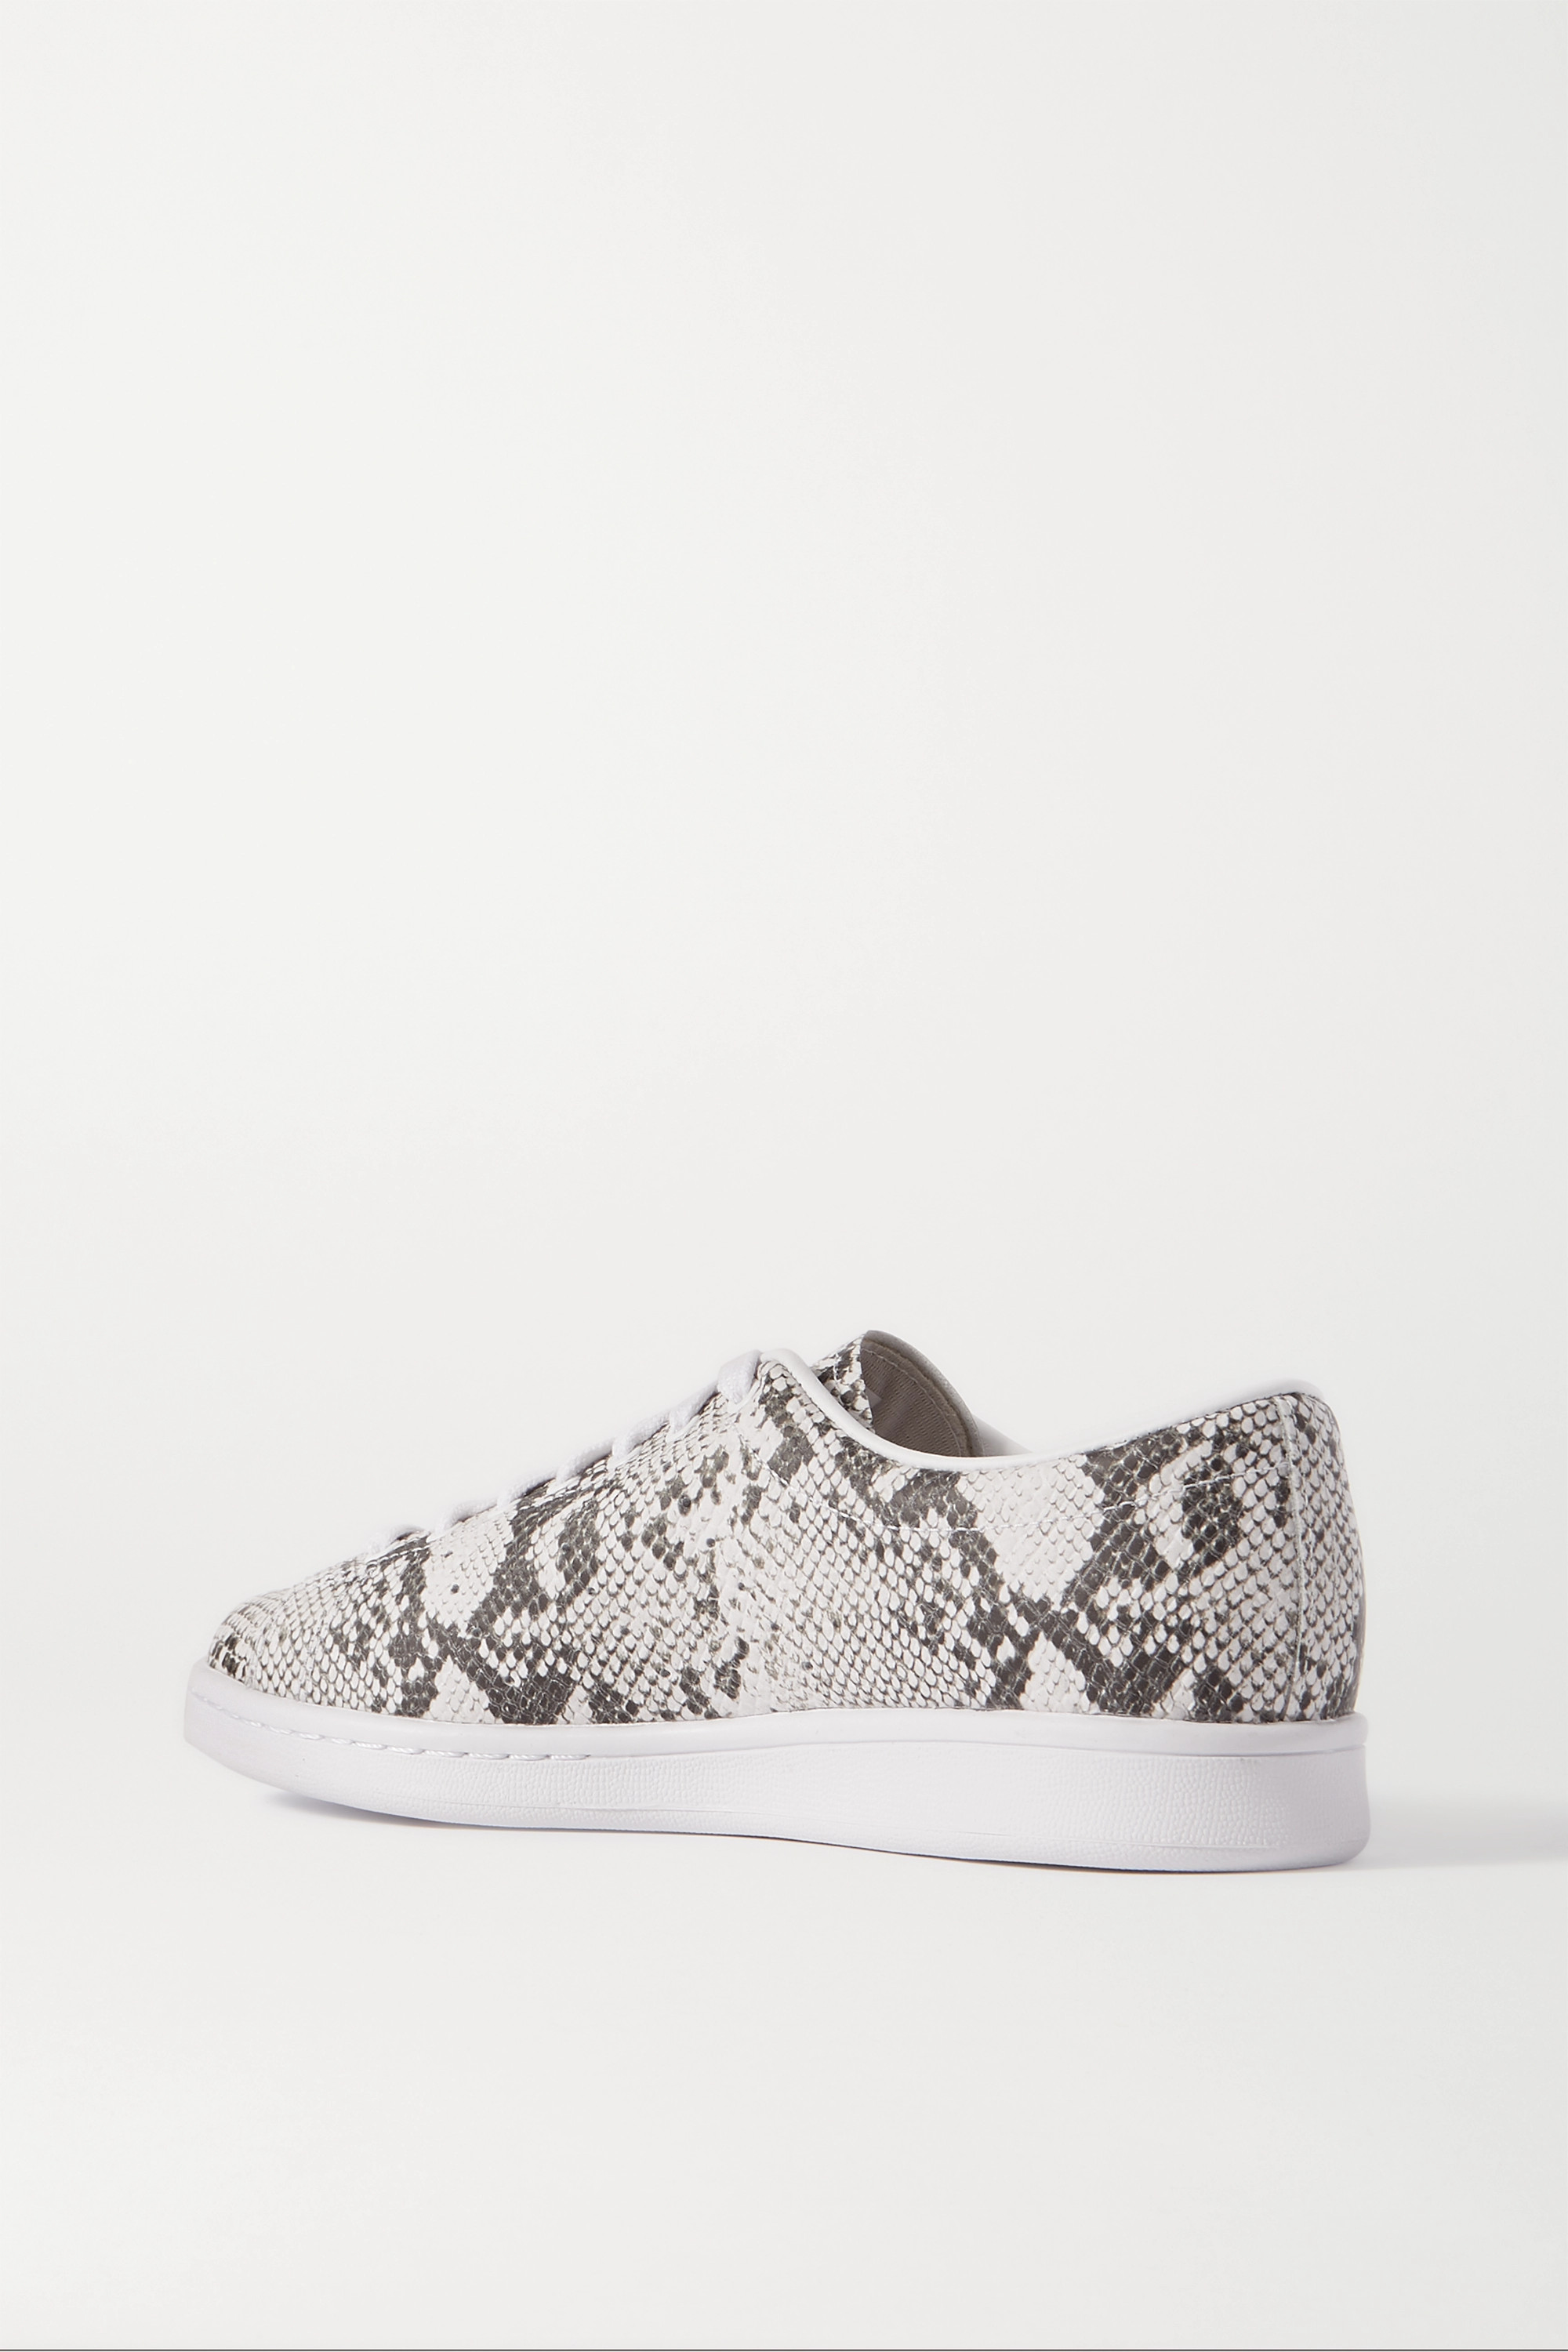 White + Hyke Aoh-001 Snake-effect Leather Sneakers | Adidas Originals